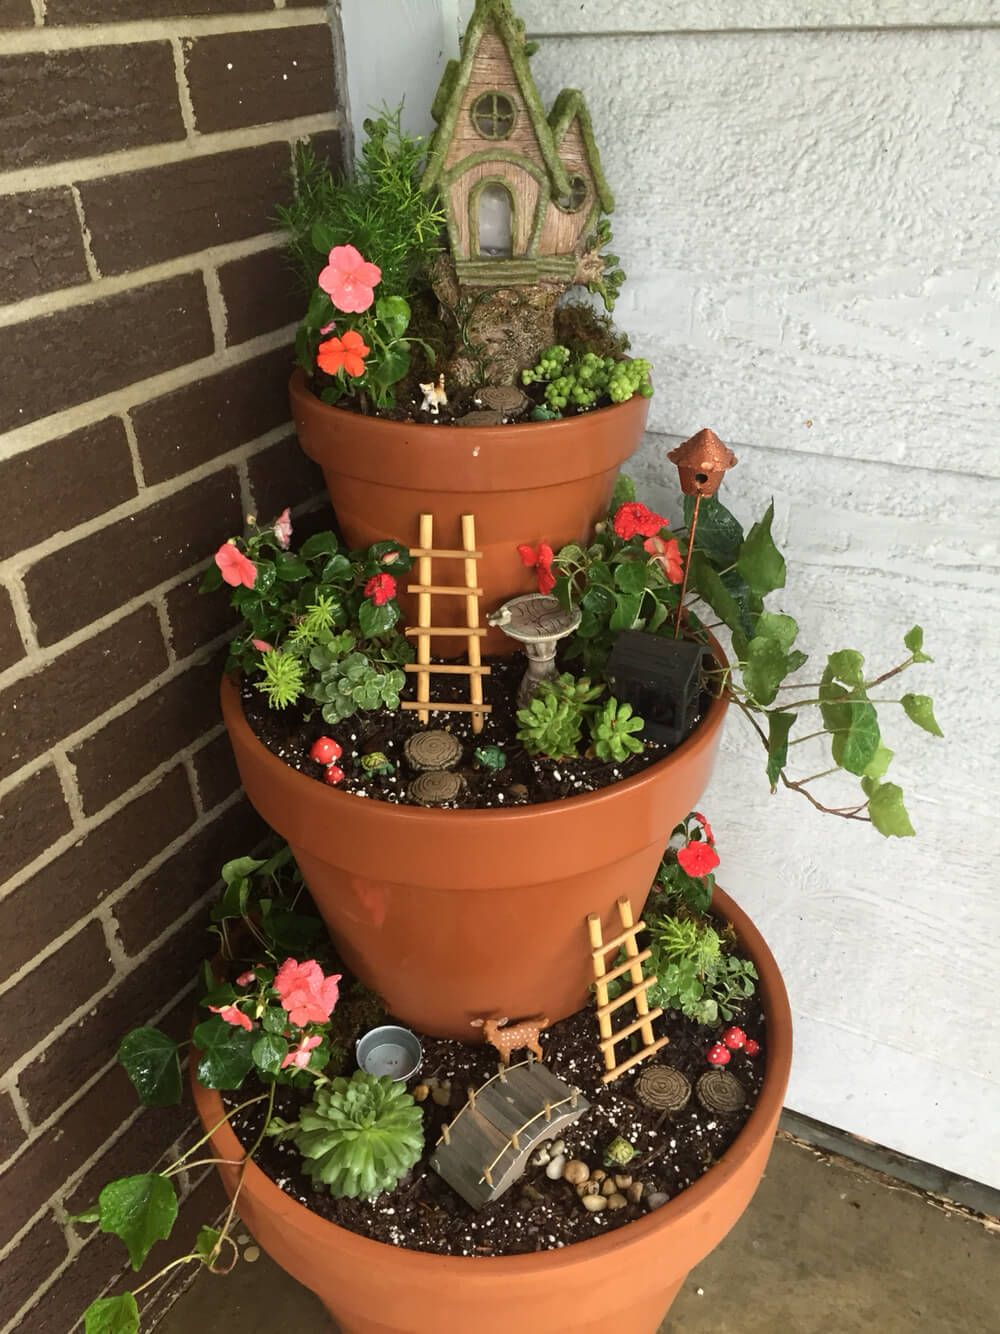 Get your kids to help you freshen up your curb appeal with this craft idea for a Tiered Front Porch Fairy Garden! By adding